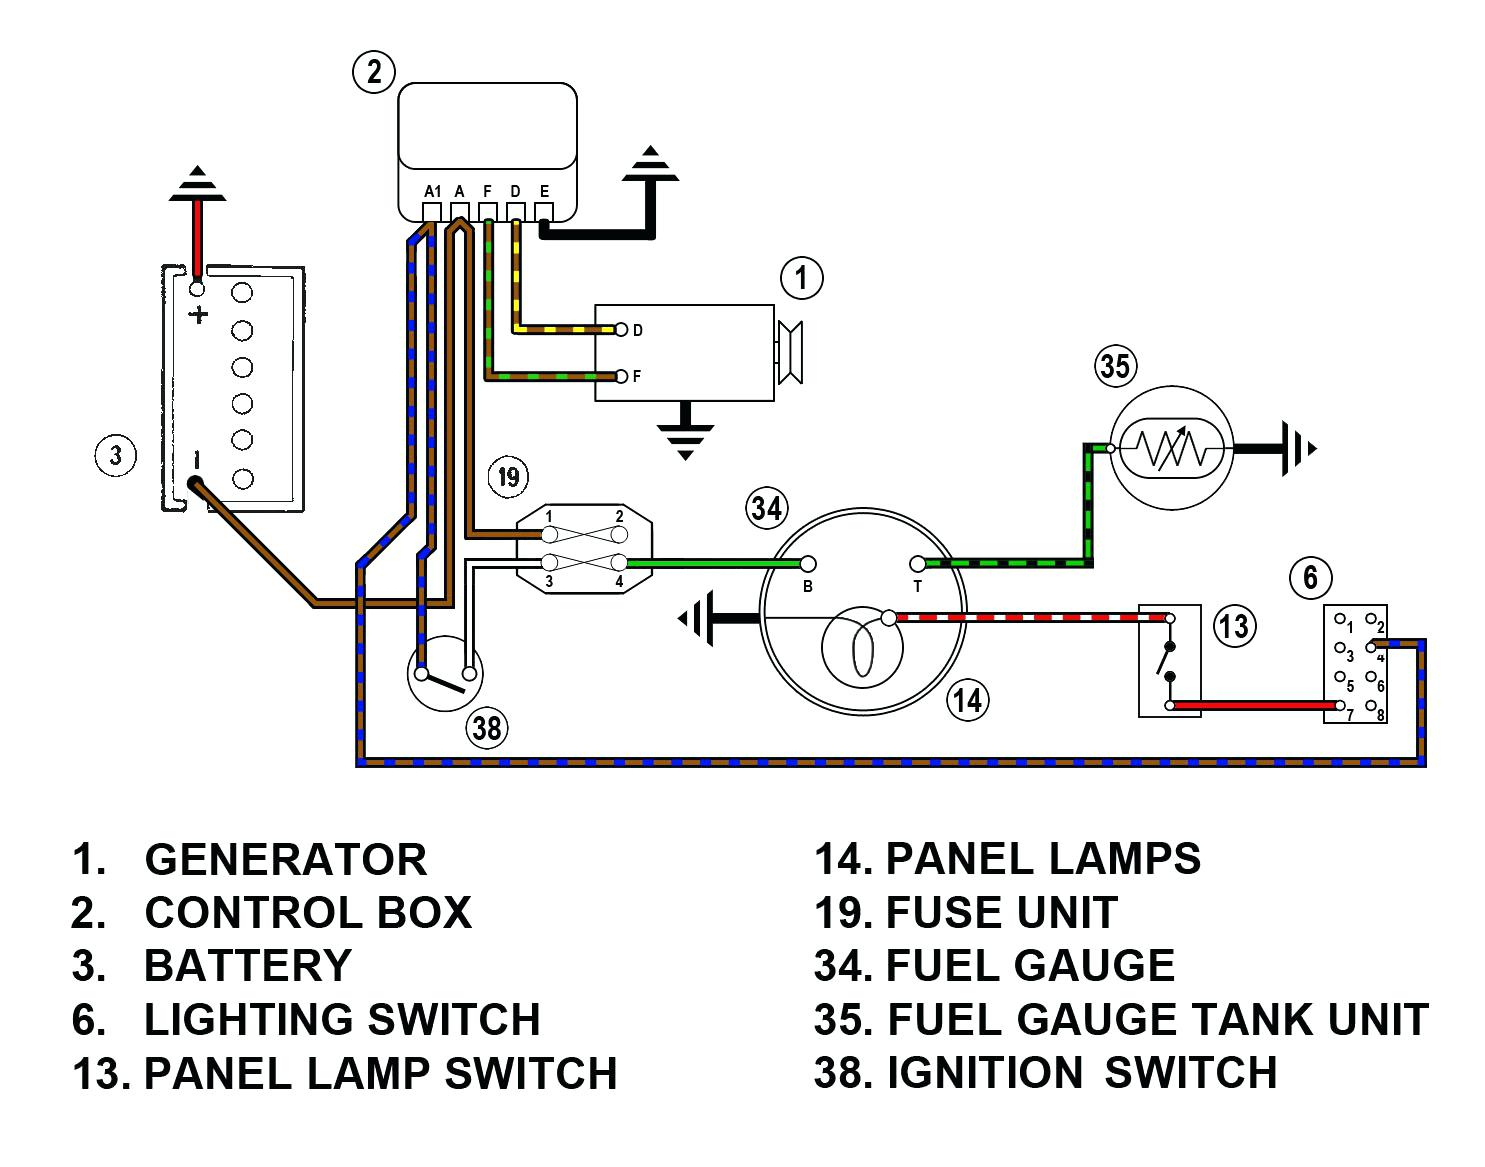 Hawke Dump Trailer Wiring Diagram Sample | Wiring Diagram Sample - Hawke Dump Trailer Wiring Diagram